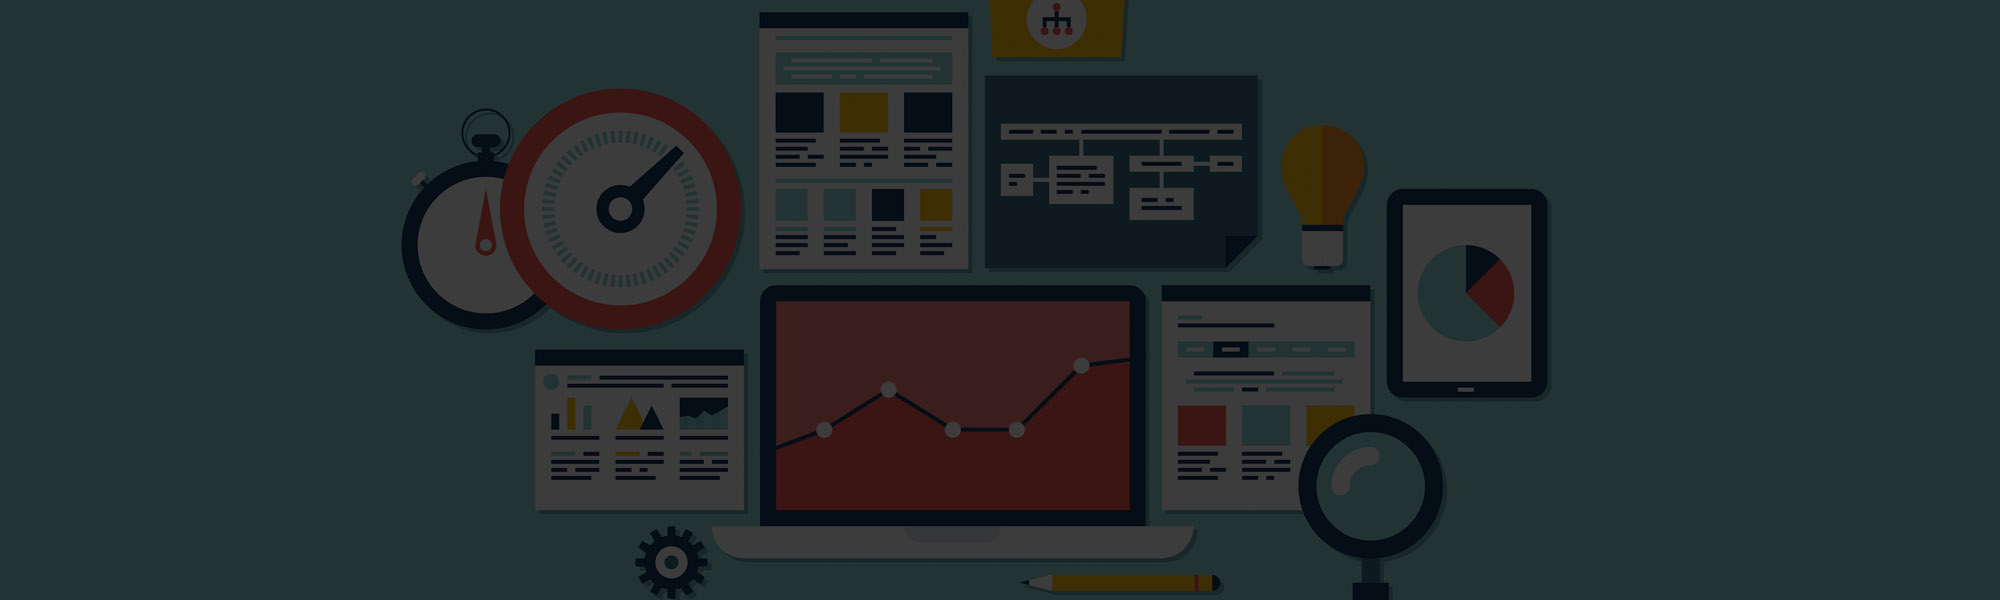 How publishers can increase engagement through a data-driven approach